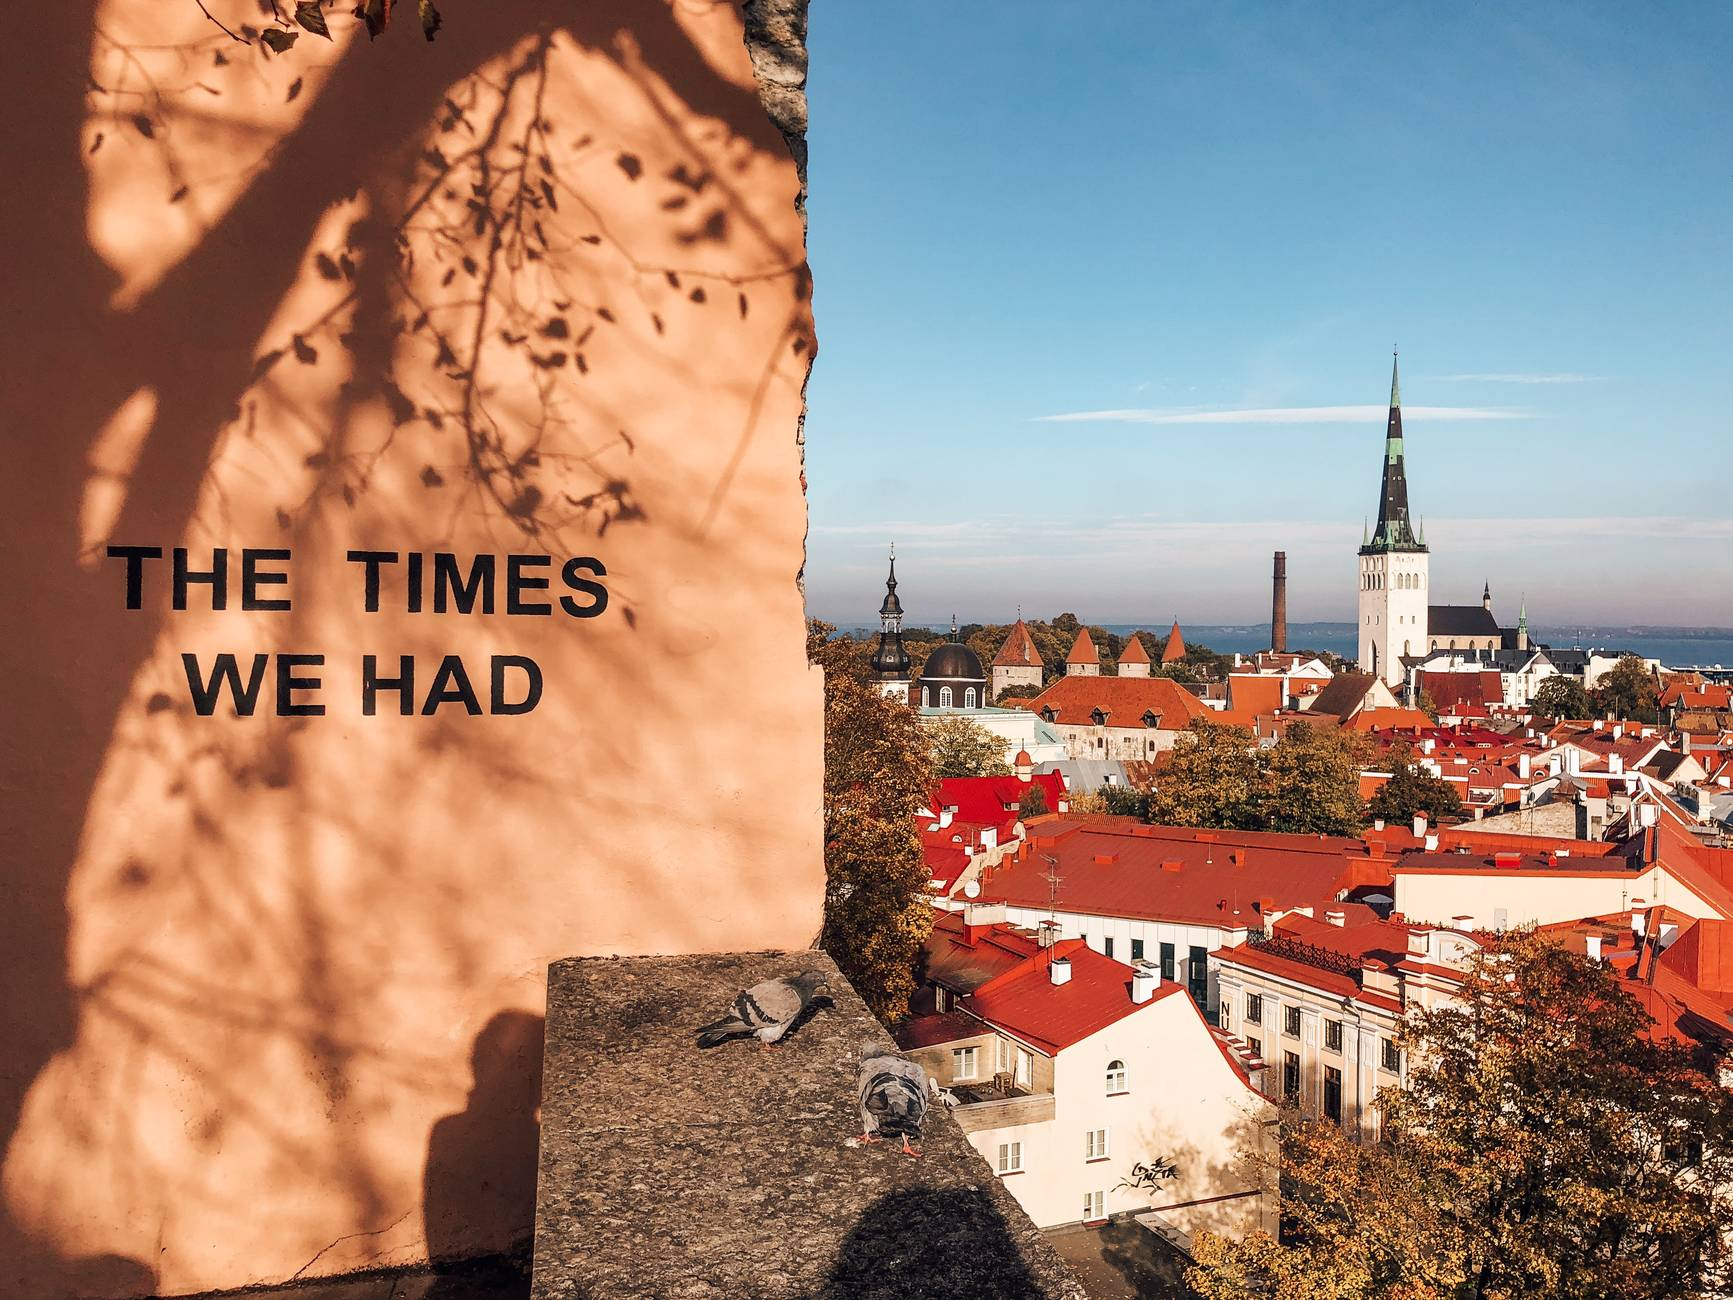 The times we had - Tallinn panorama from the Kohtuotsa viewing platform in Estonia